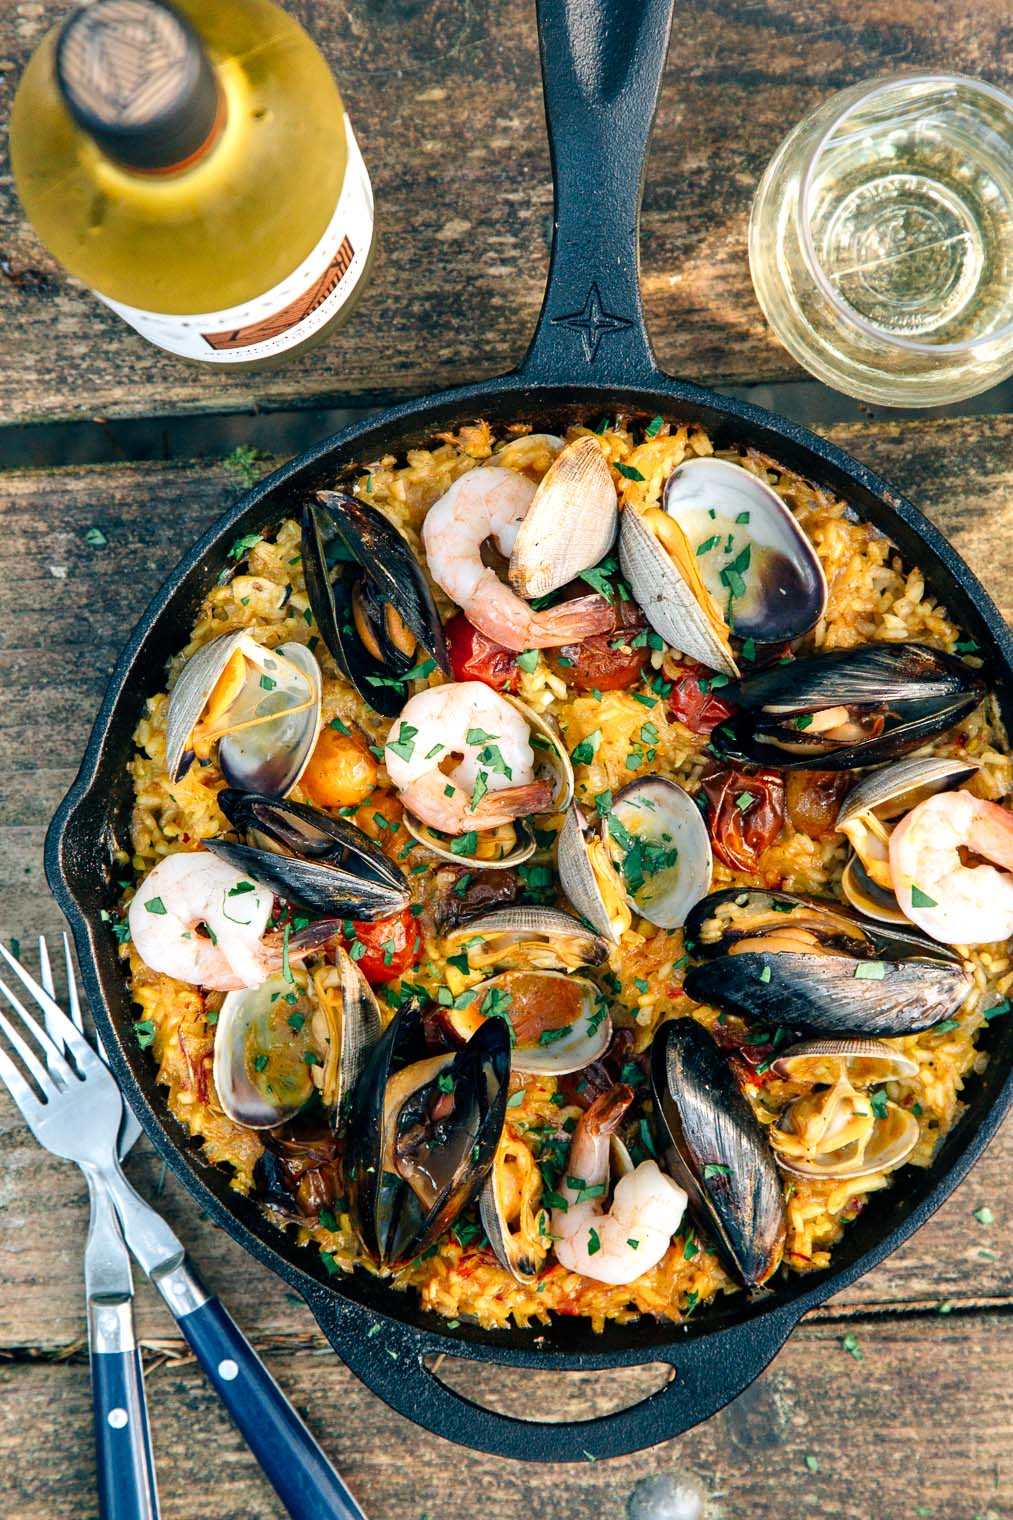 This campfire paella cooked in a cast iron skillet is sure to impress your tent-mates on your next camping trip!